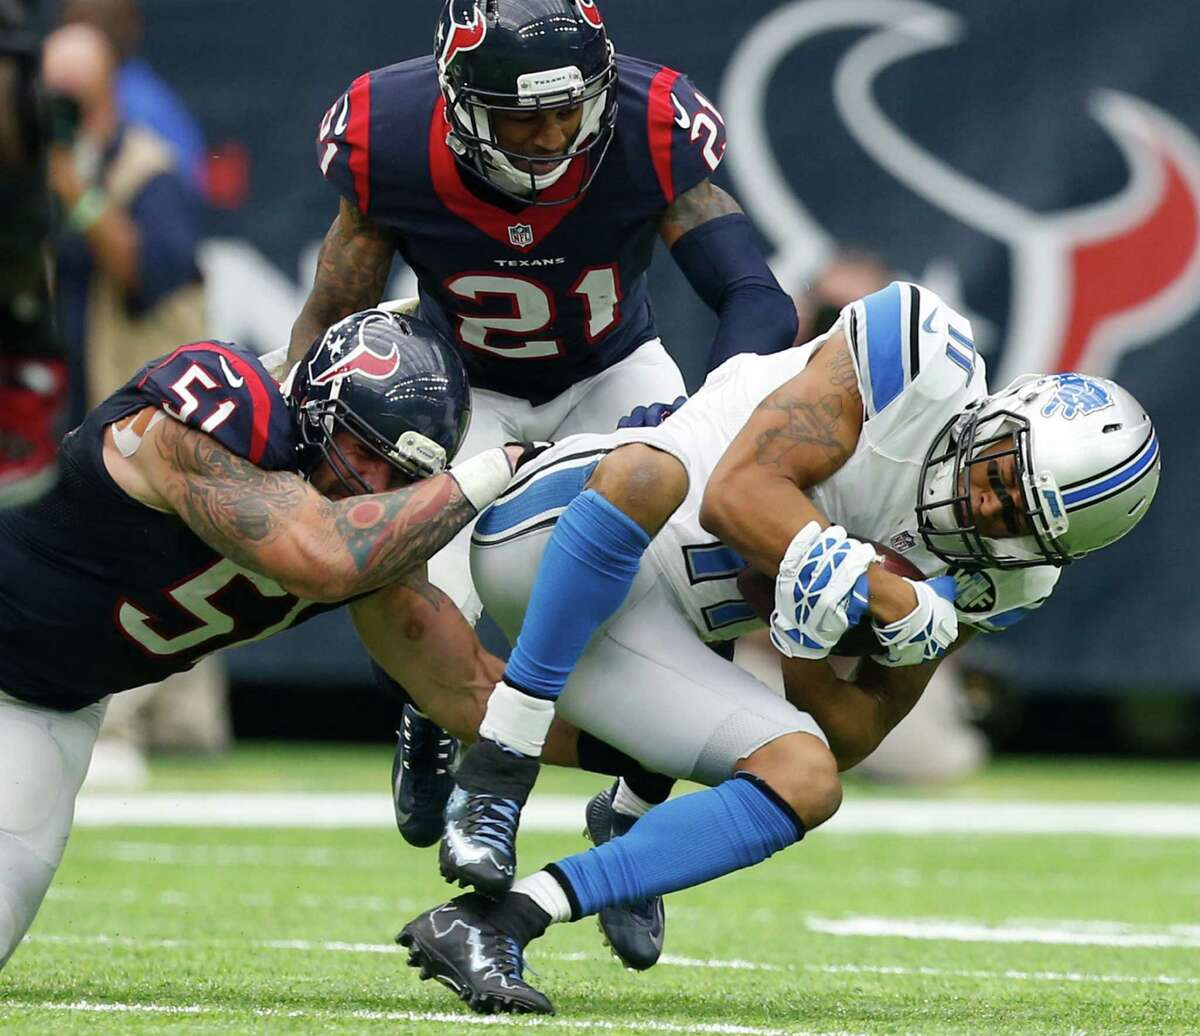 Texans linebacker John Simon (51) brings down Lions wide receiver Marvin Jones for one of his 49 tackles this season, a total than ranks second on the team to Benardrick McKinney.